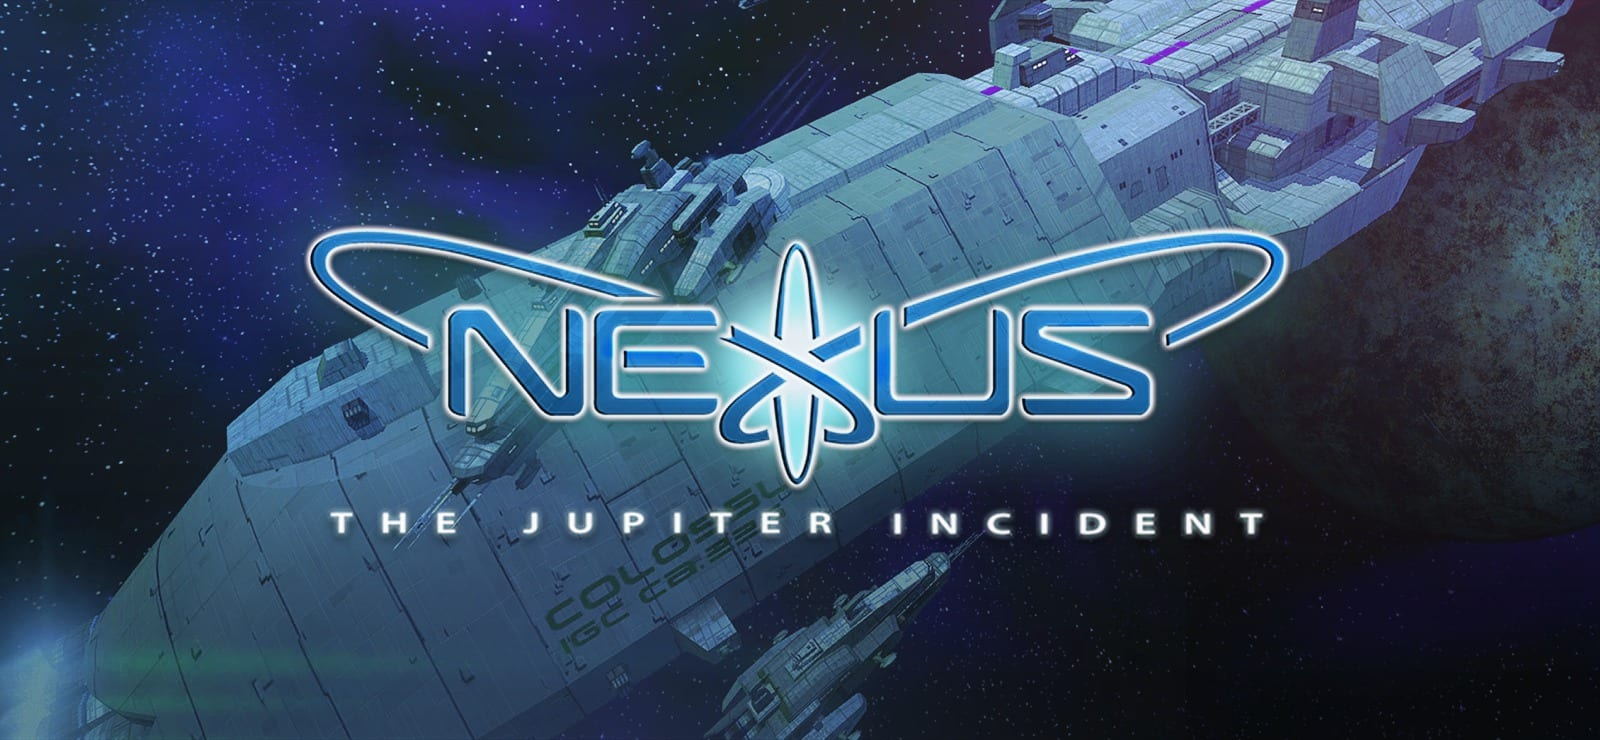 Nexus: The Jupiter Incident varies-with-device